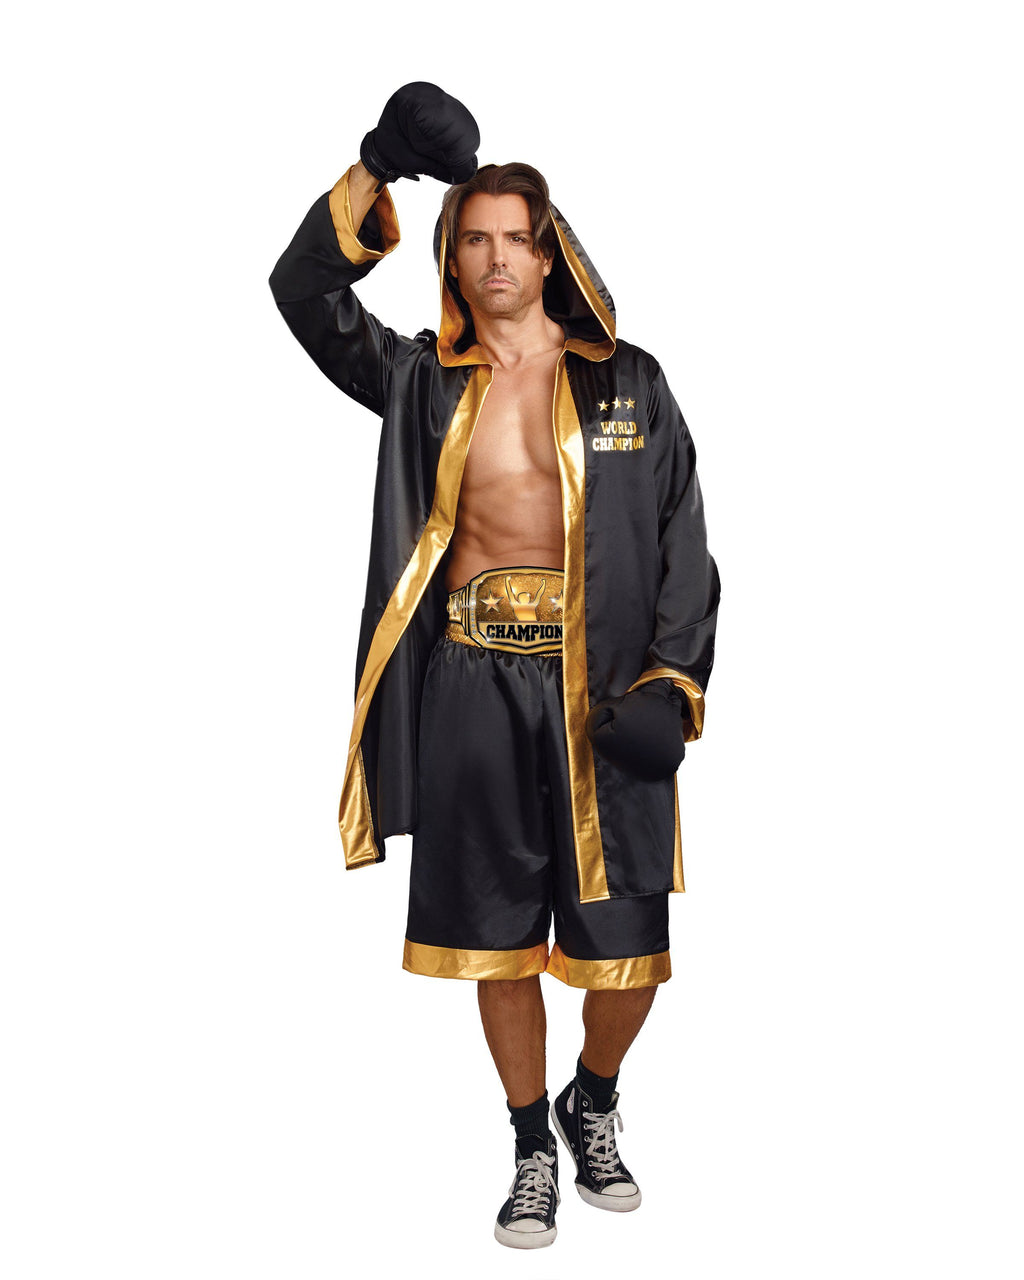 Men's World Champion Men's Costume Dreamgirl Costume